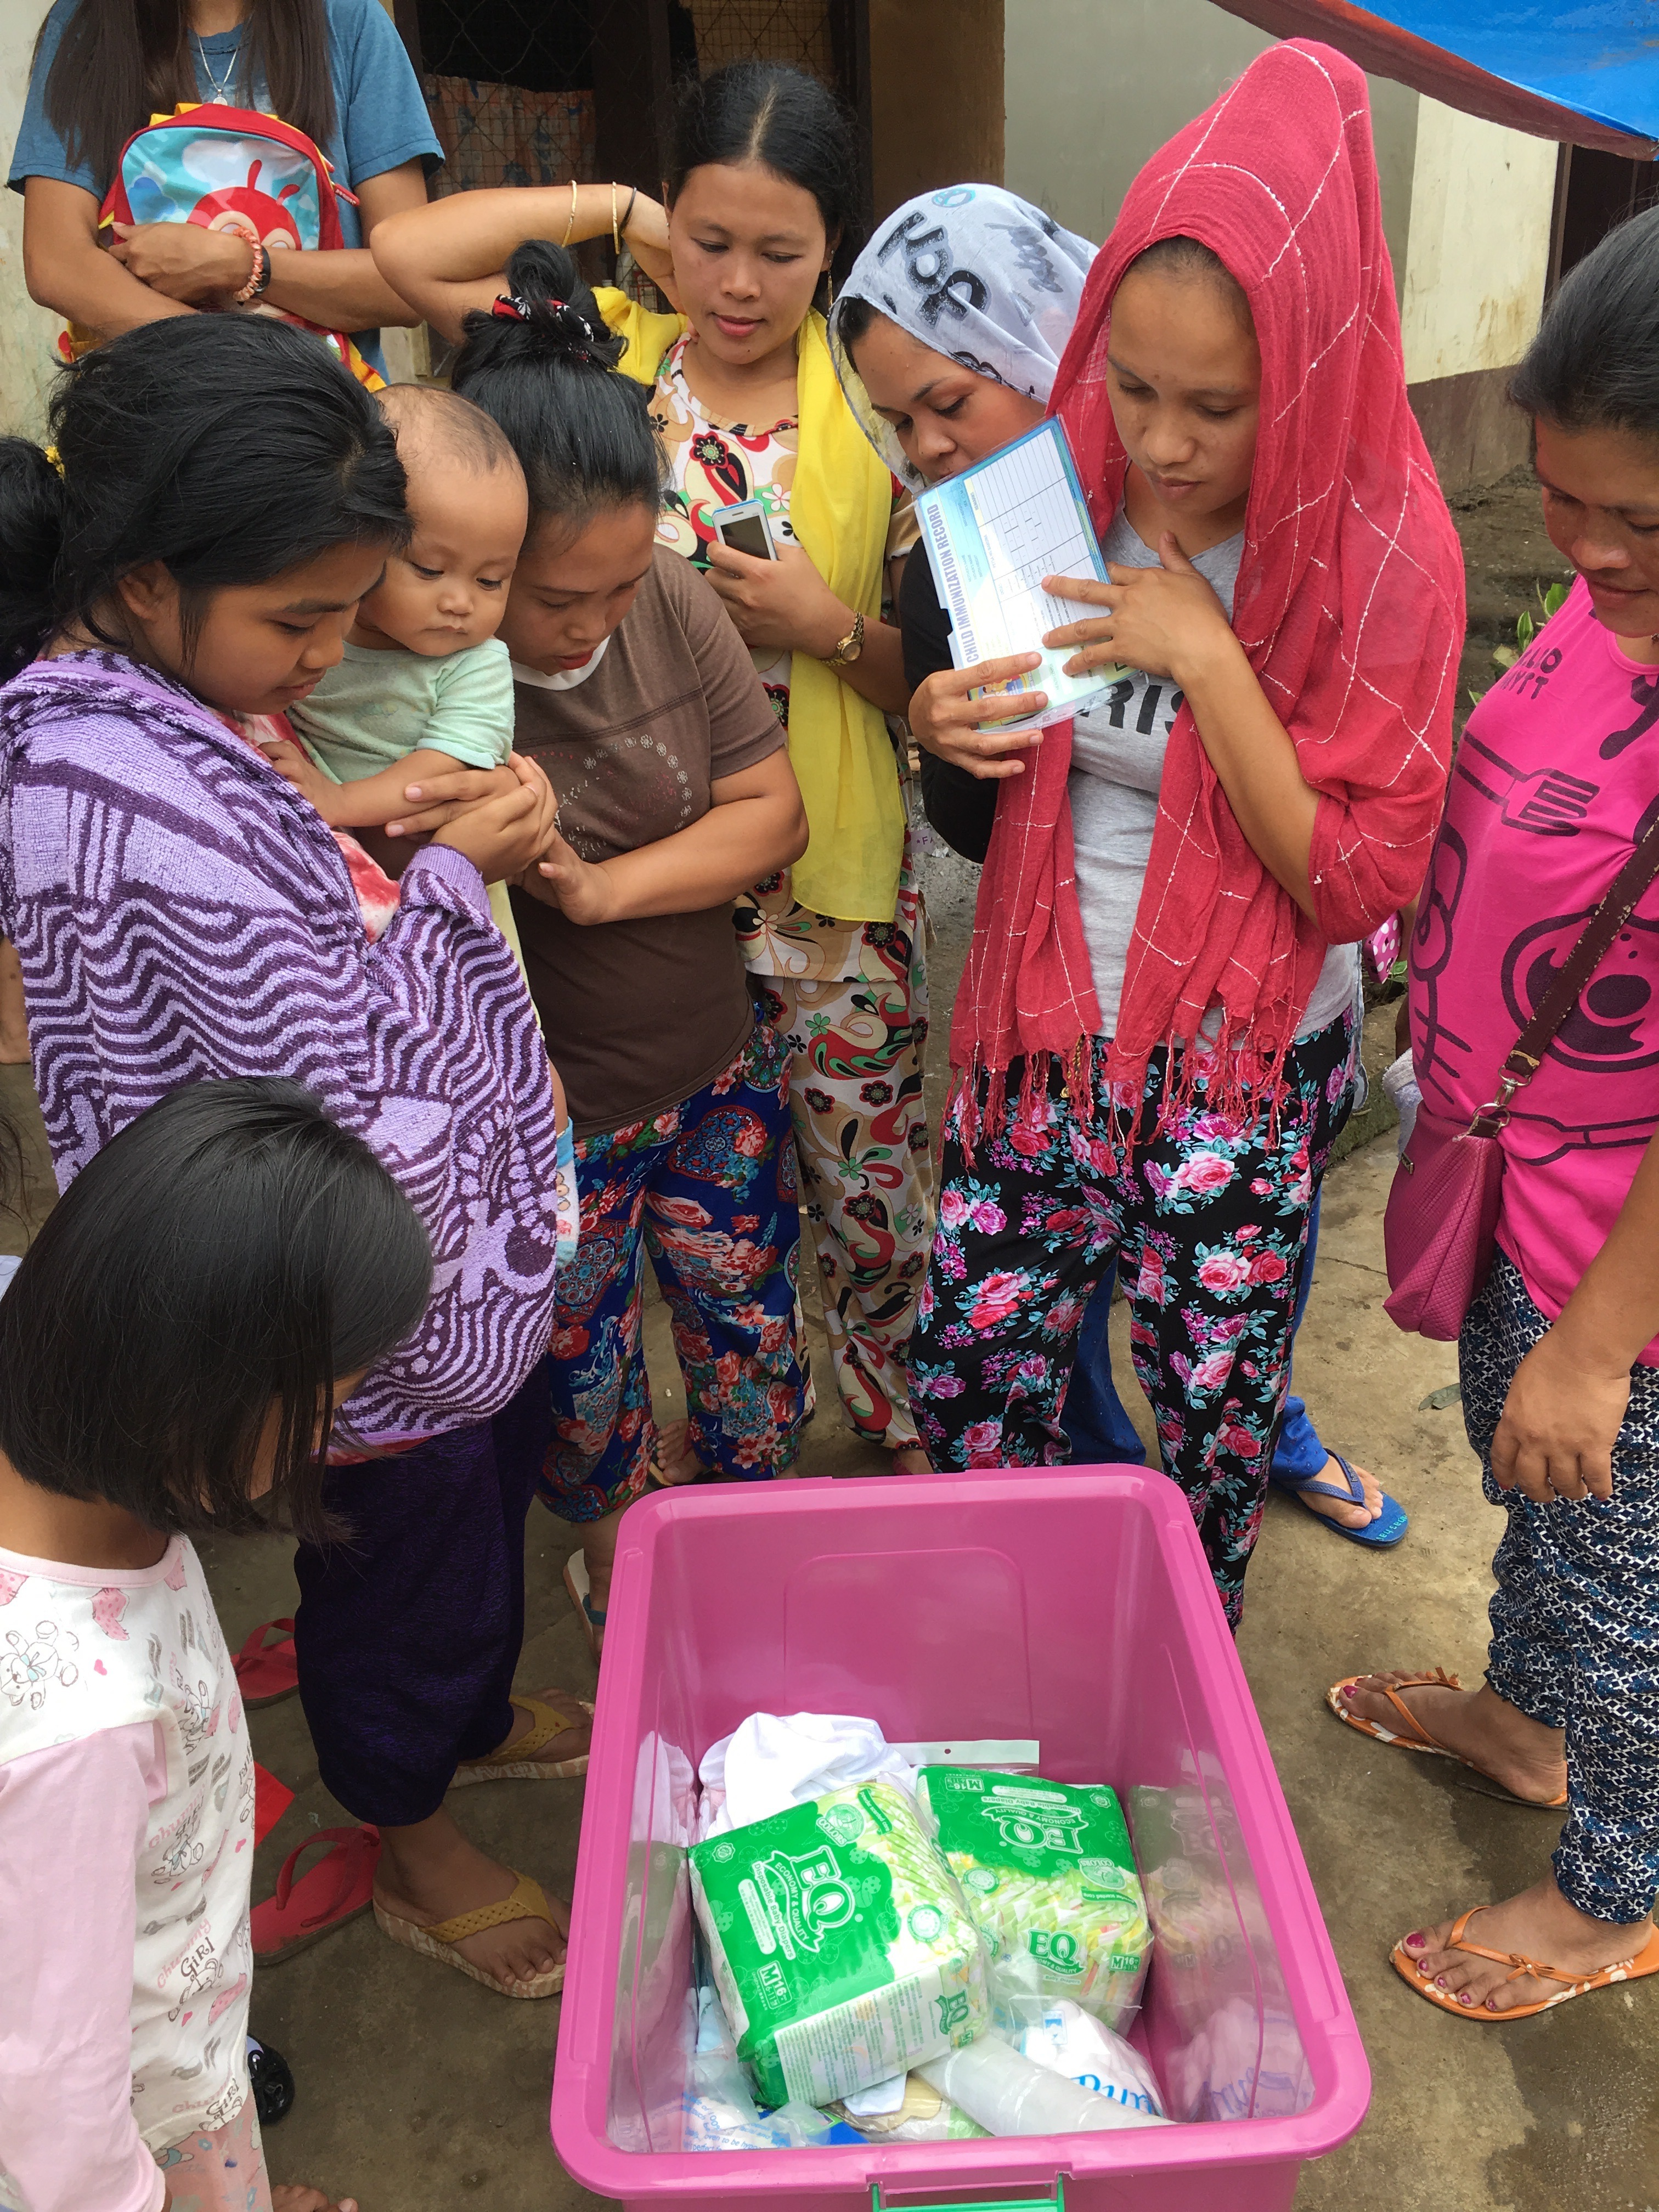 Nashreema and other women at the evacuation curious about what's inside the newborn kit